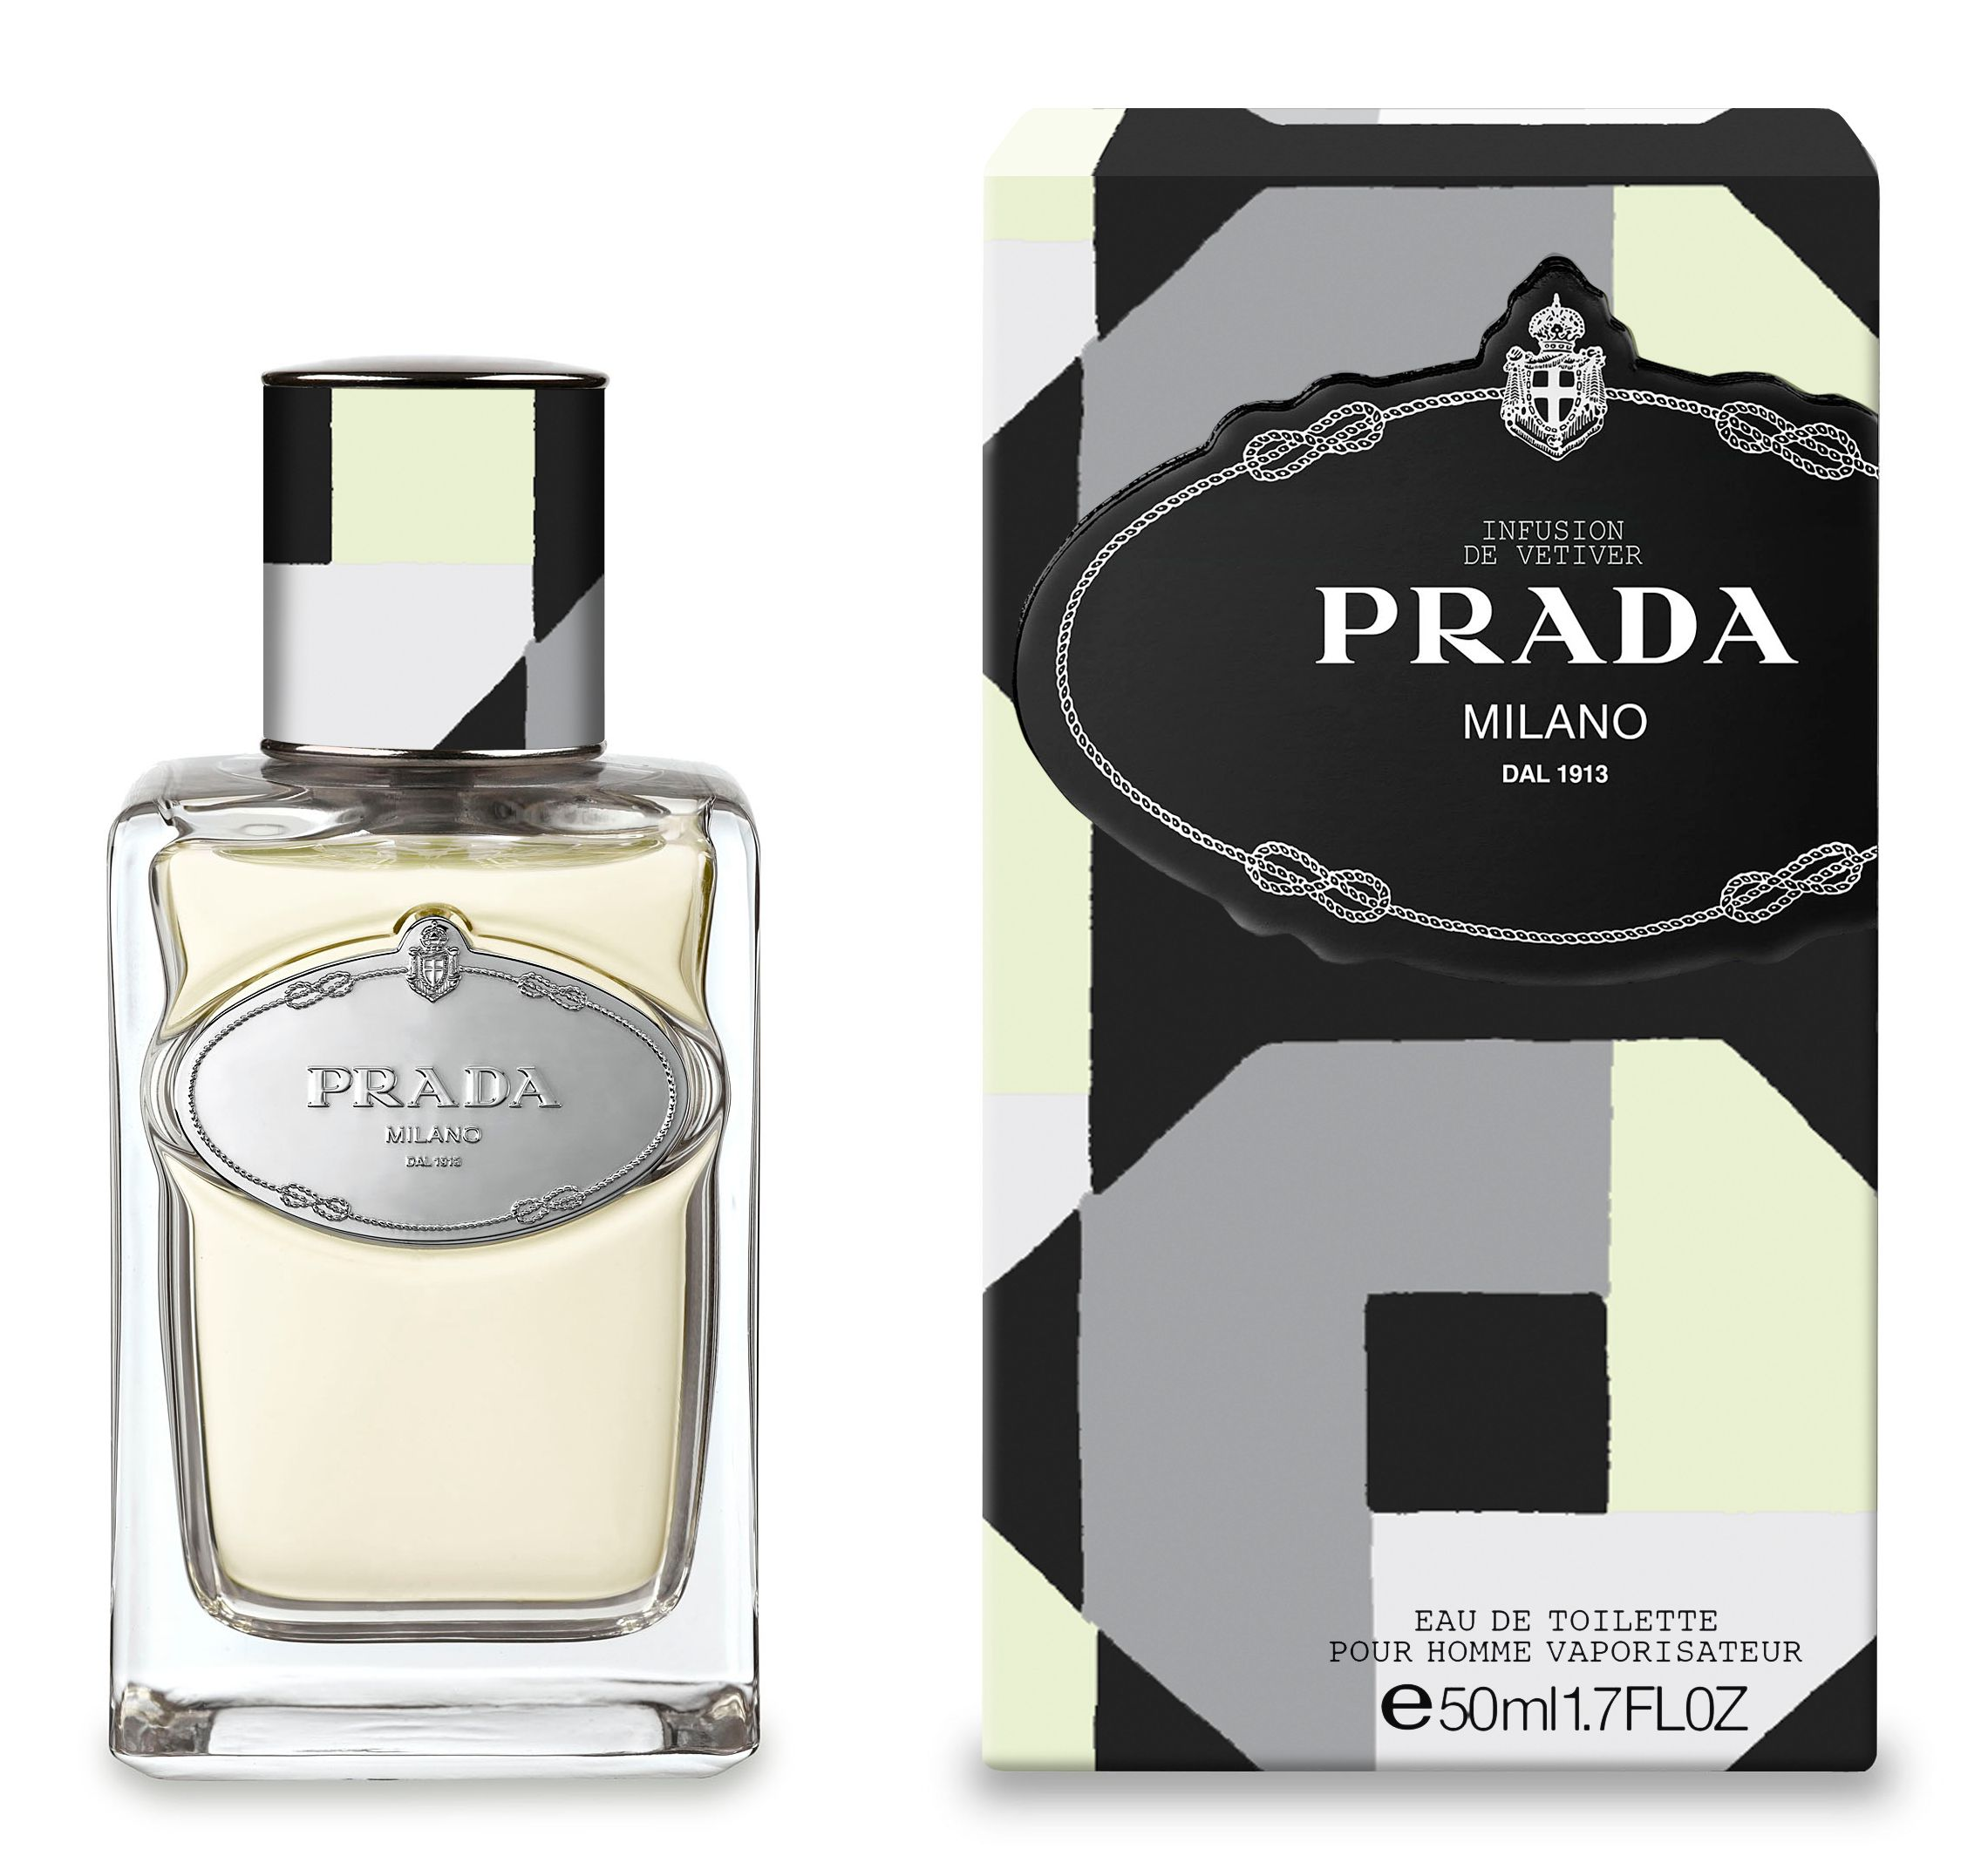 Perfumes reviews, cheap prices, uk delivery, compare prices